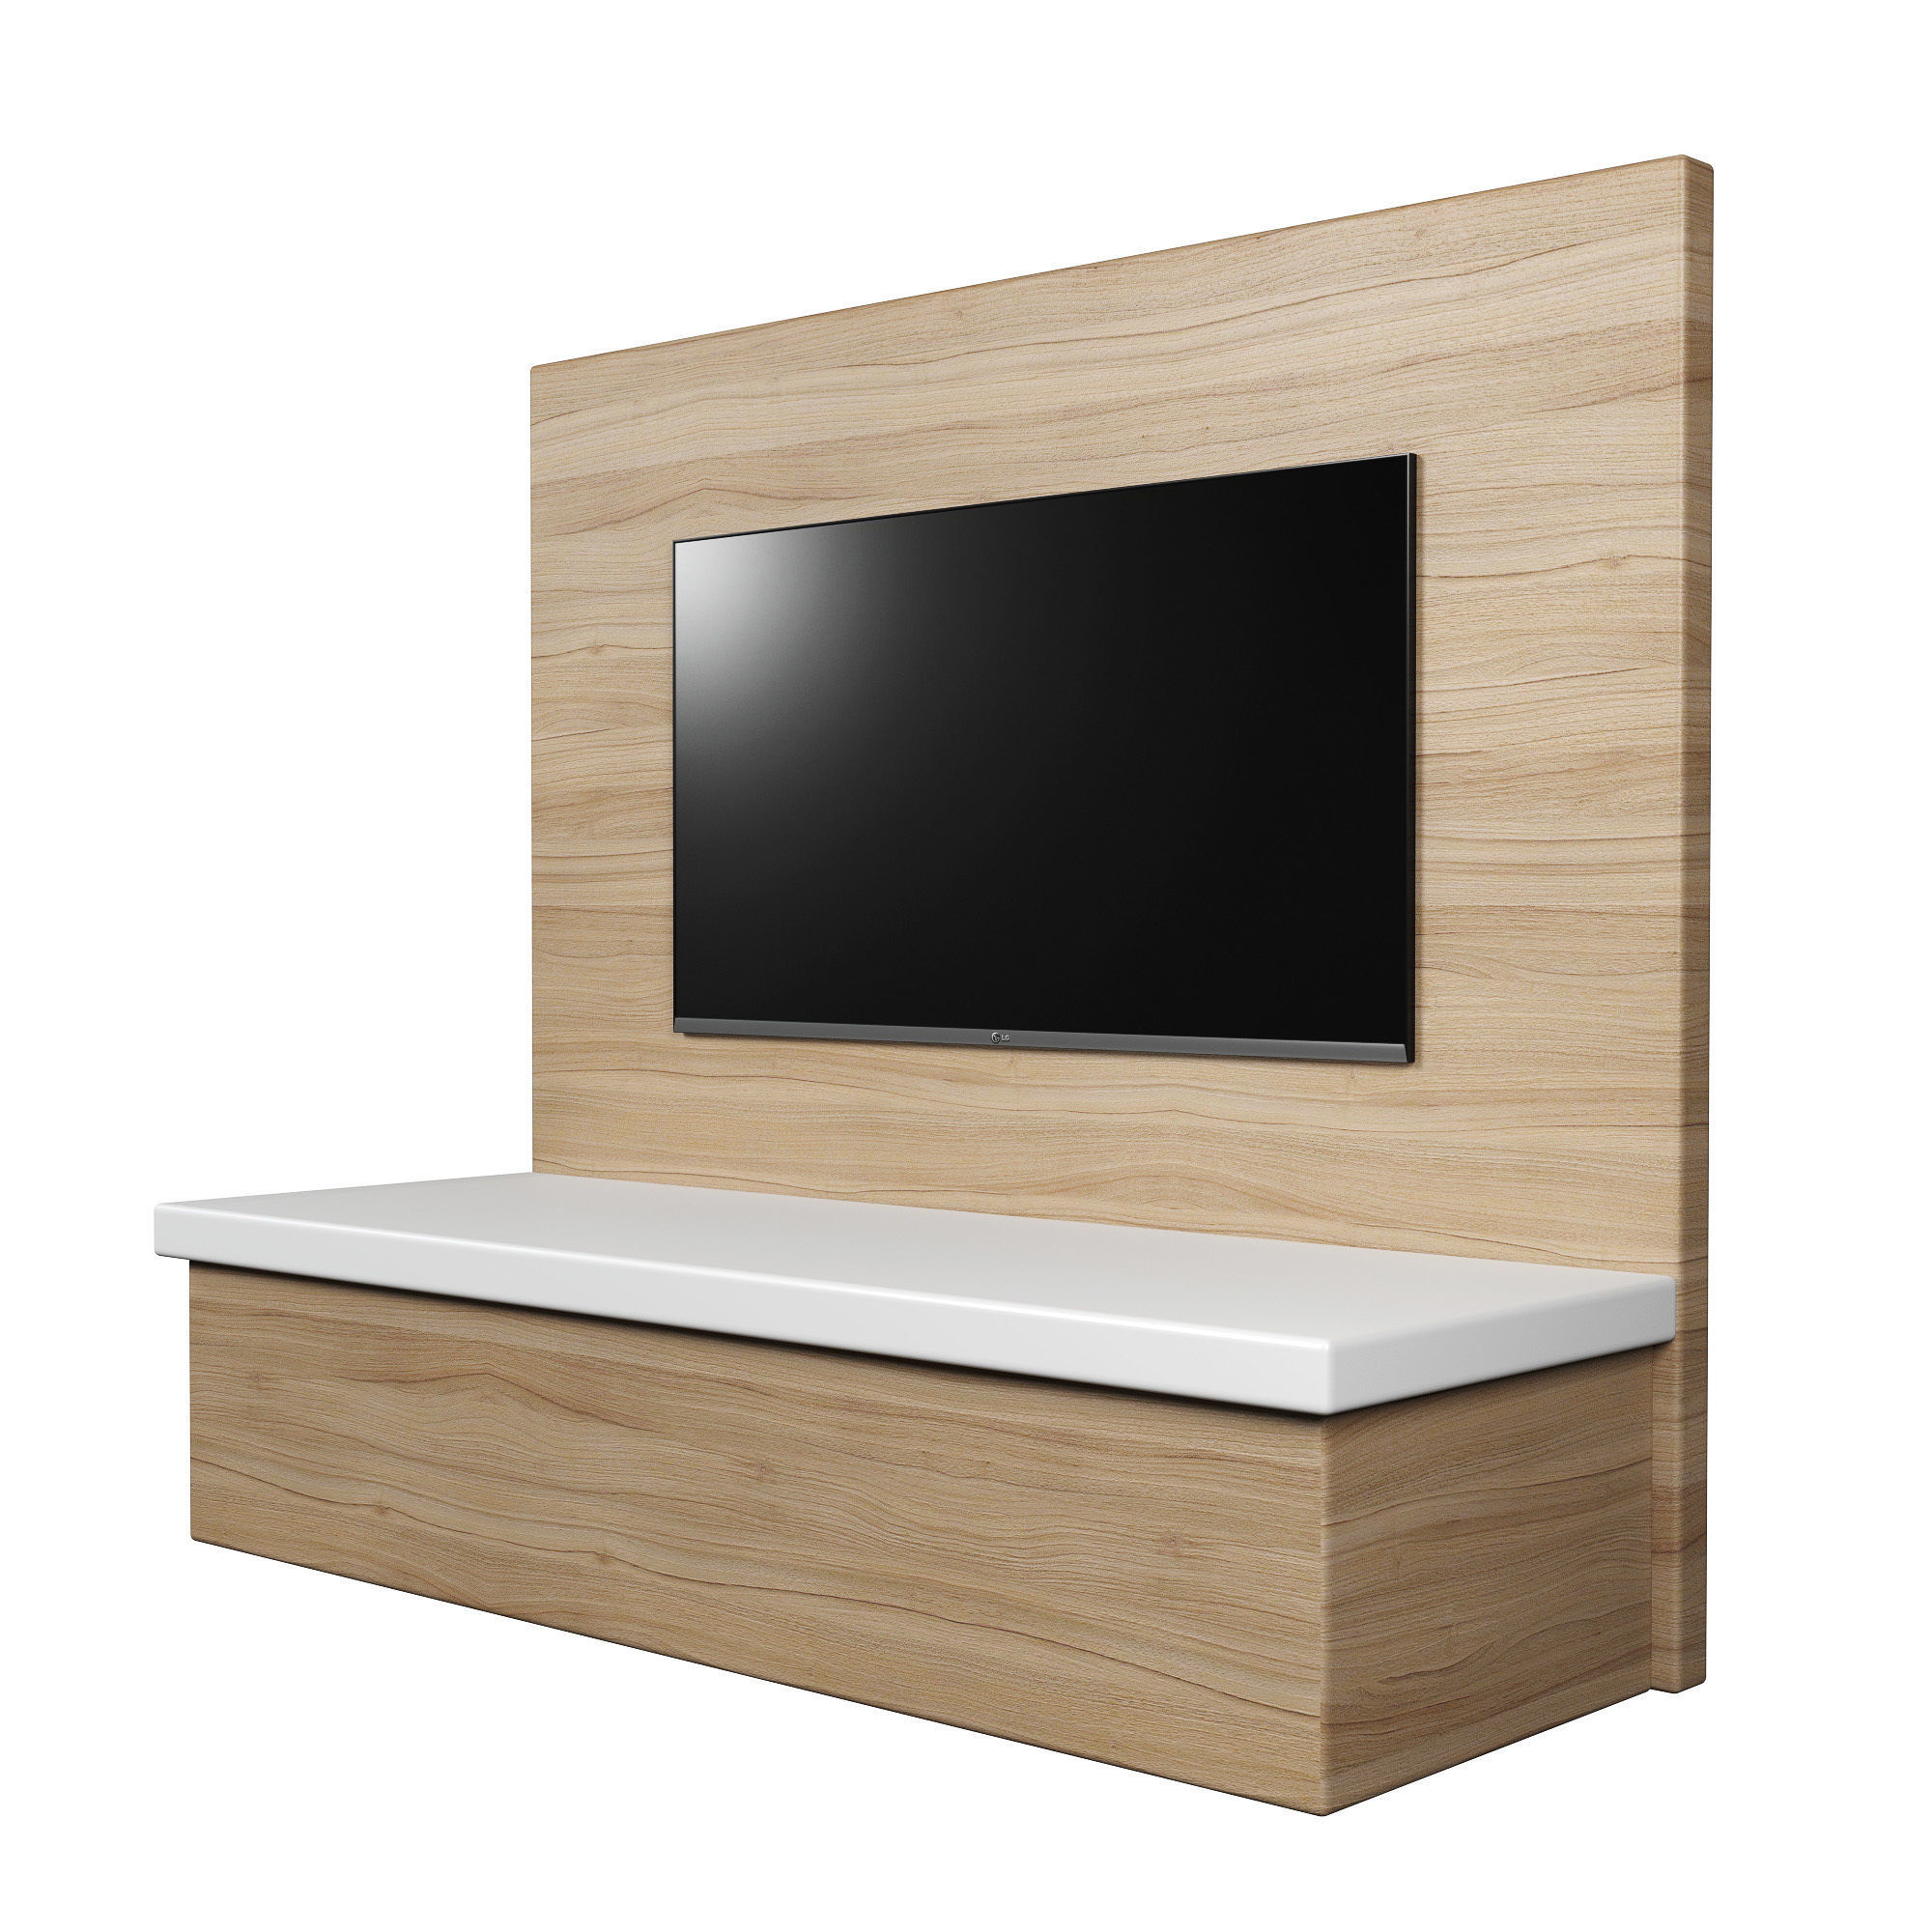 Tv Wall Panel With A Flat Screen Model